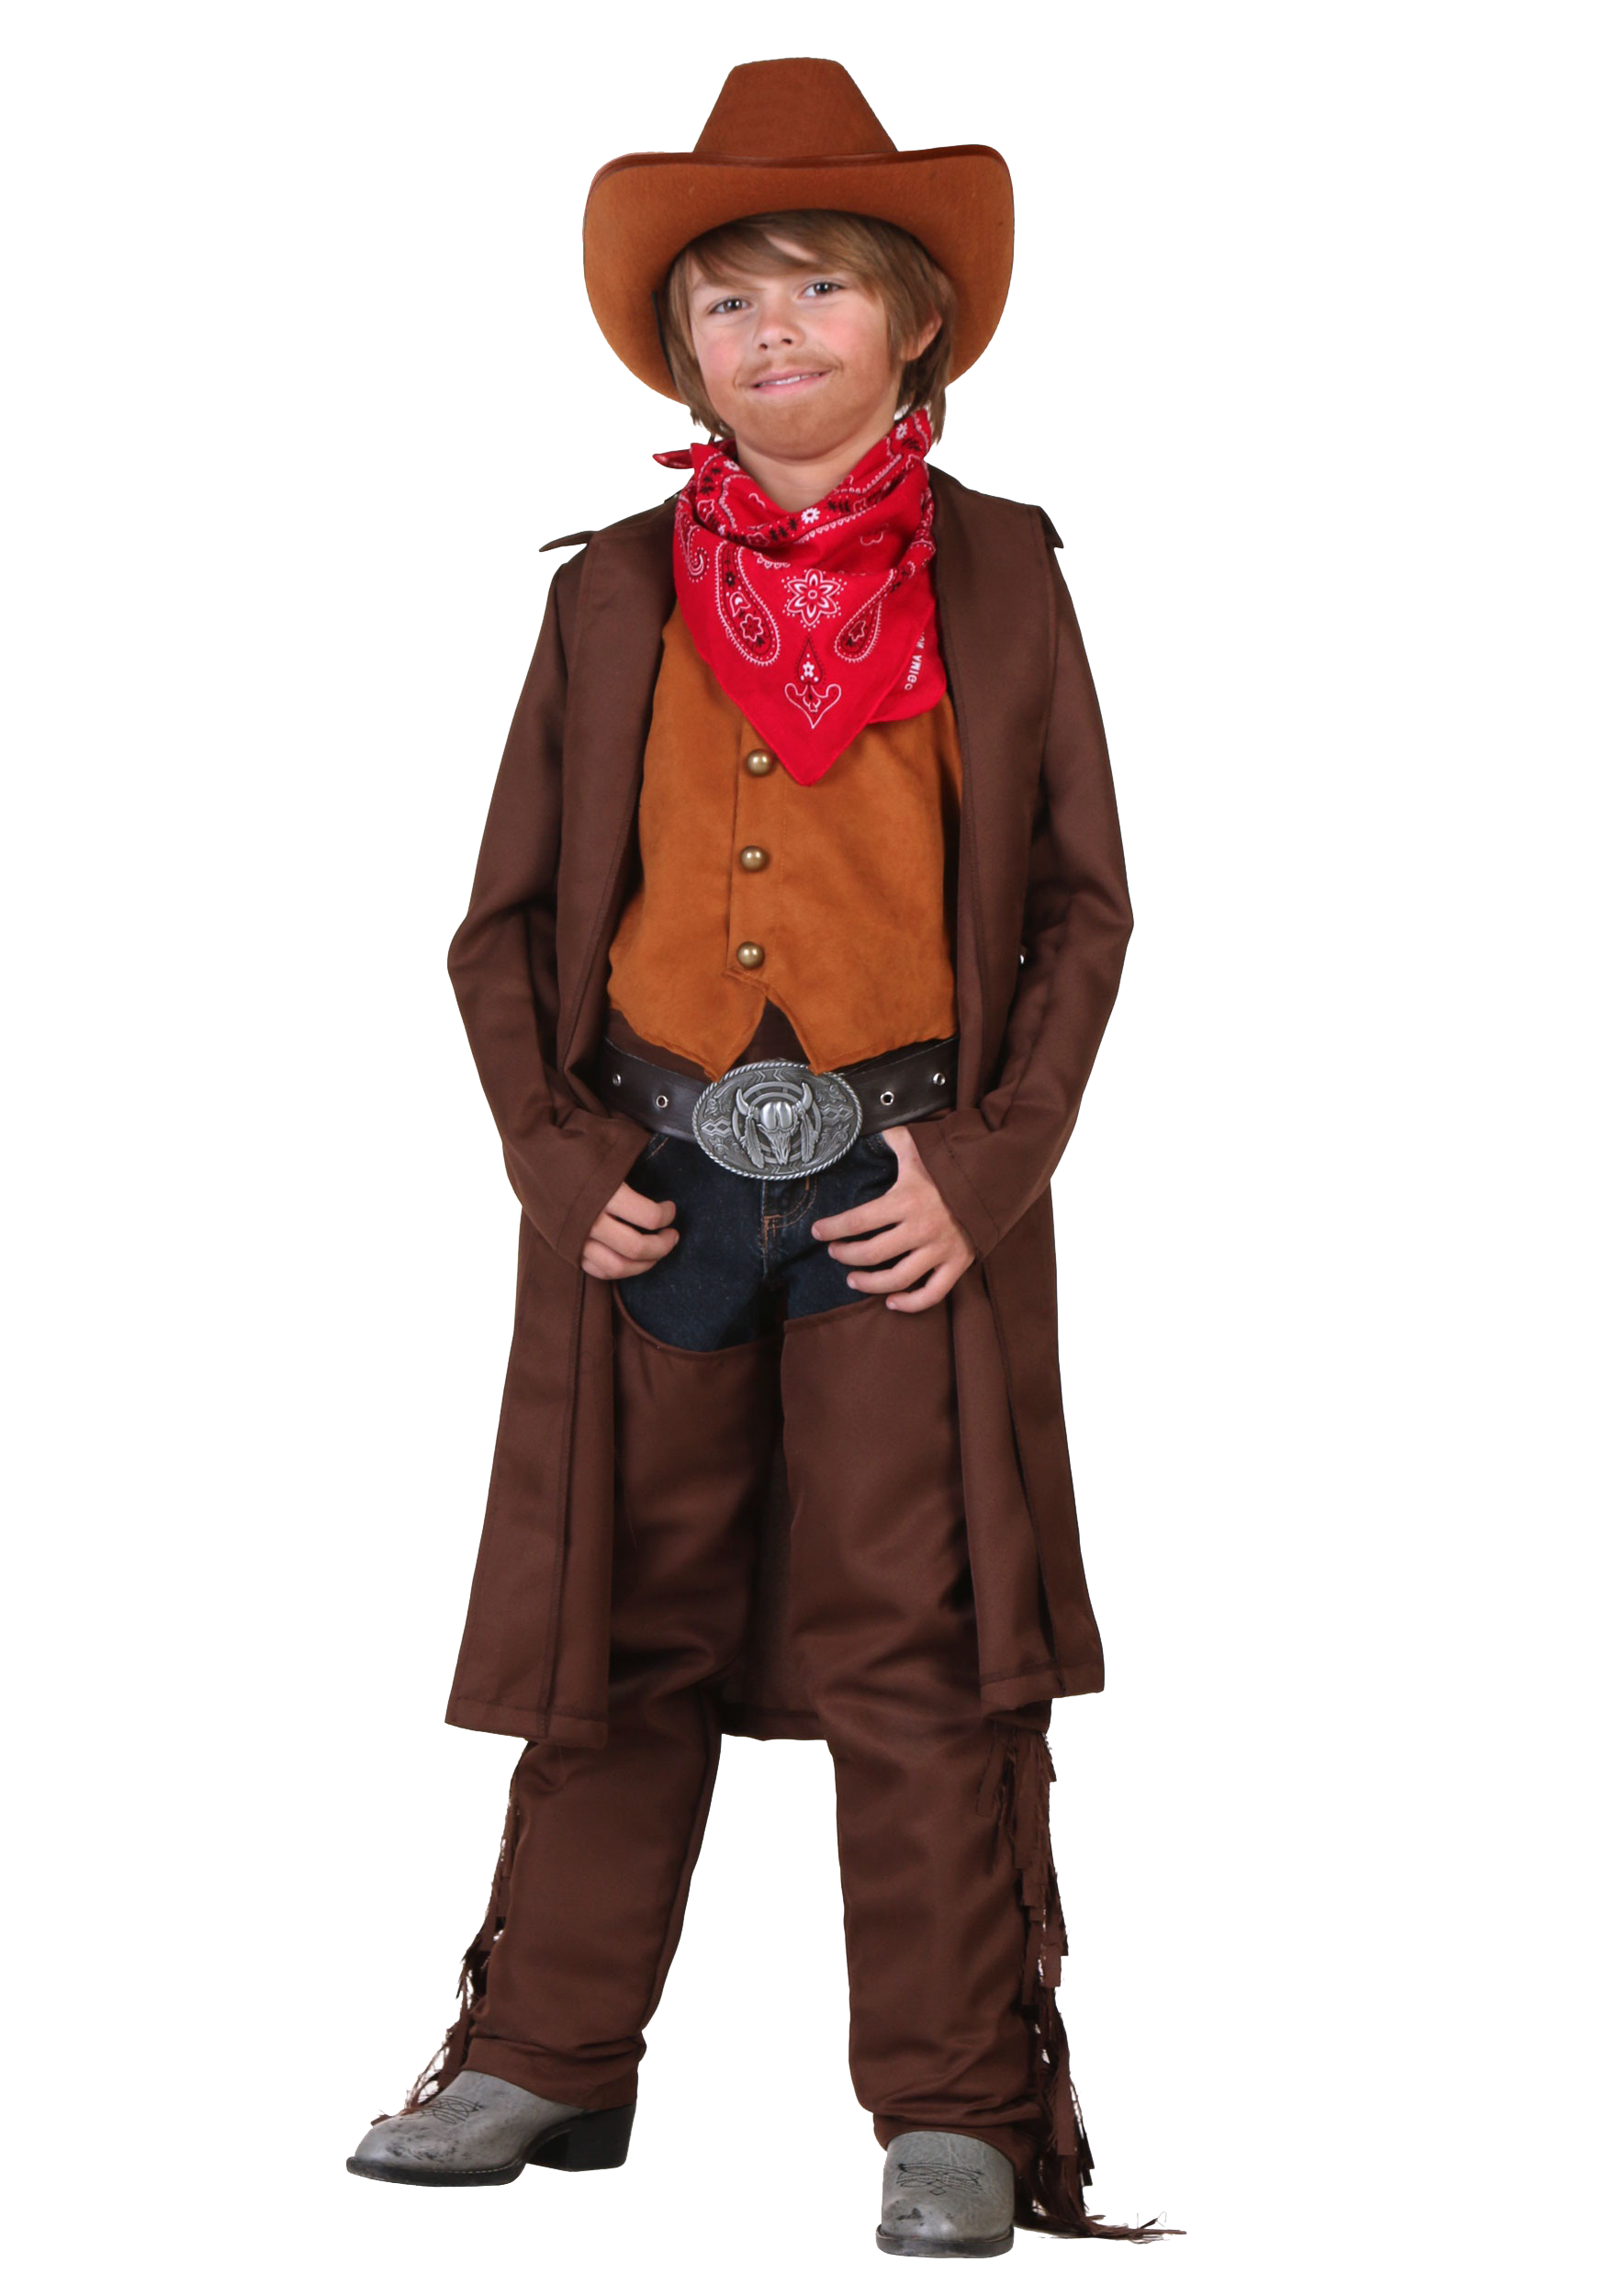 image royalty free stock Png . Cowboy transparent